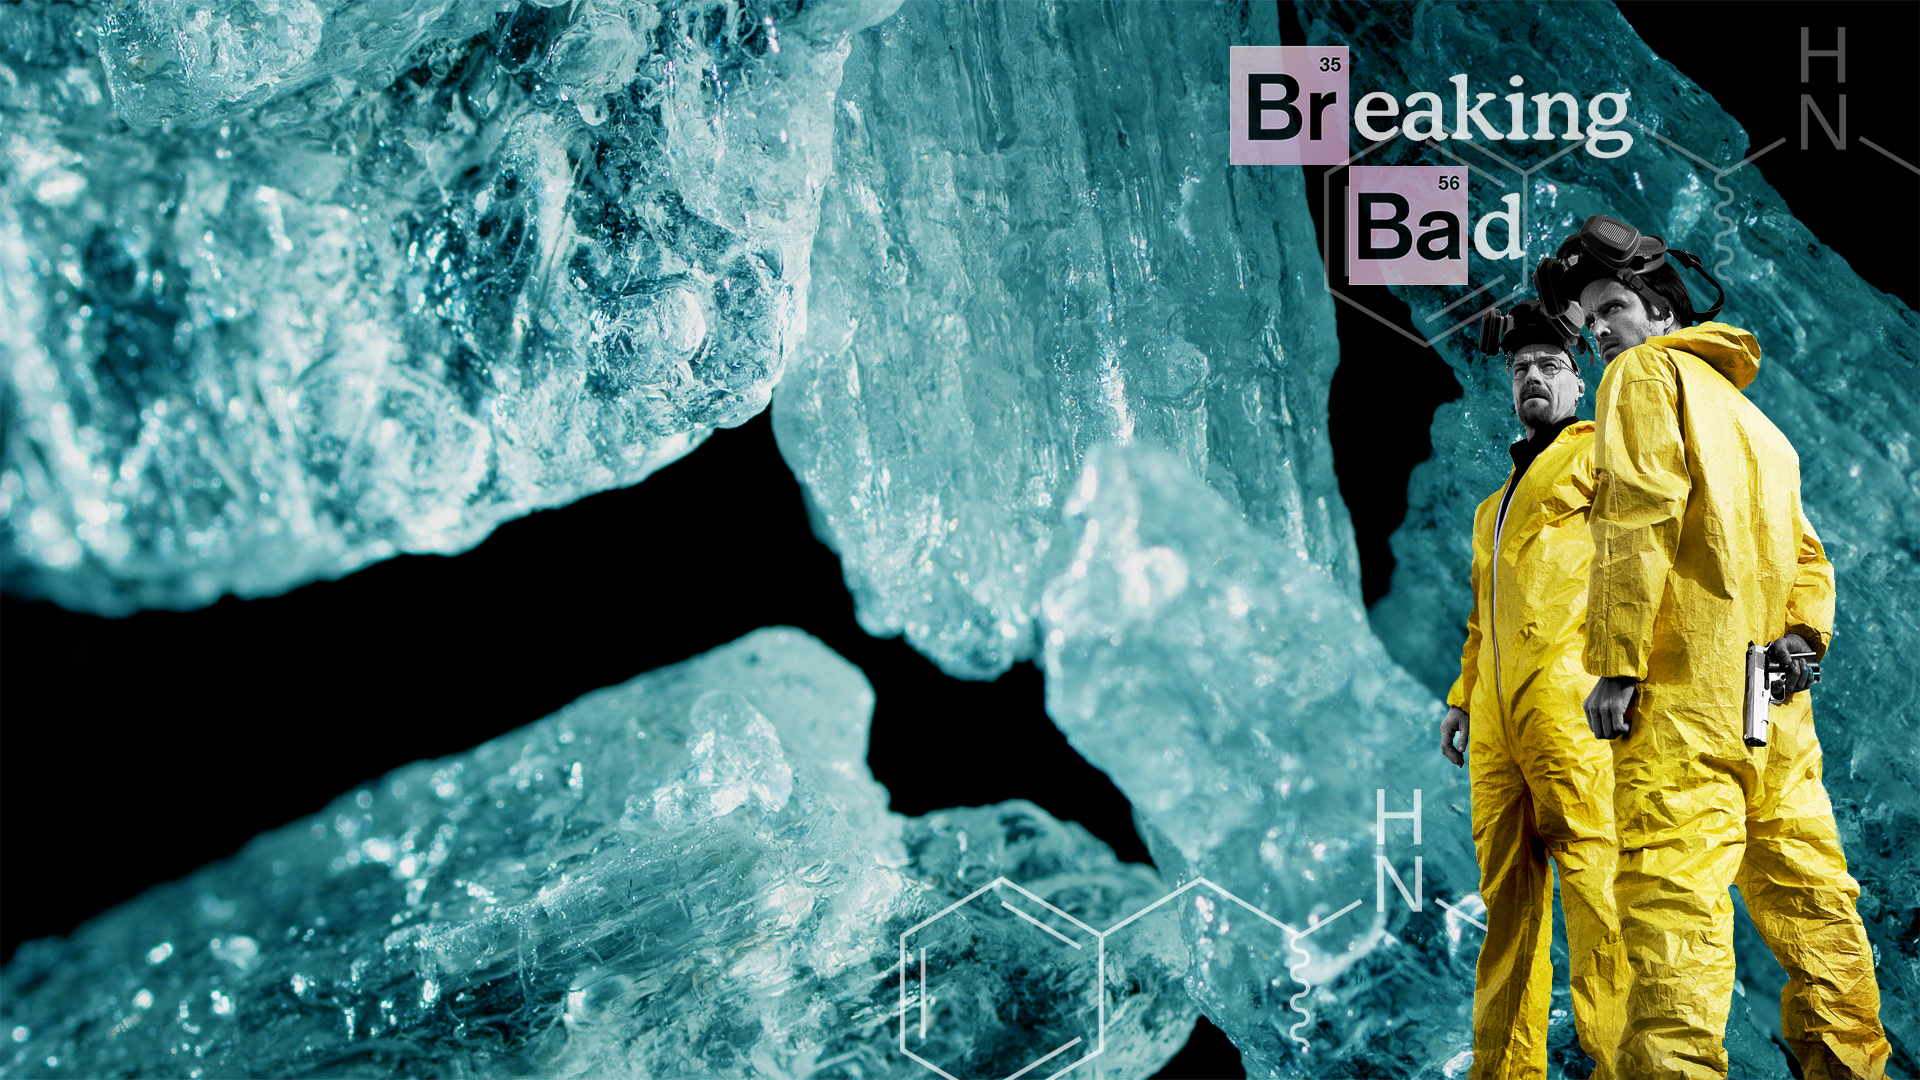 Breaking Bad Res: 1920x1080 HD / Size:1934kb. Views: 252552